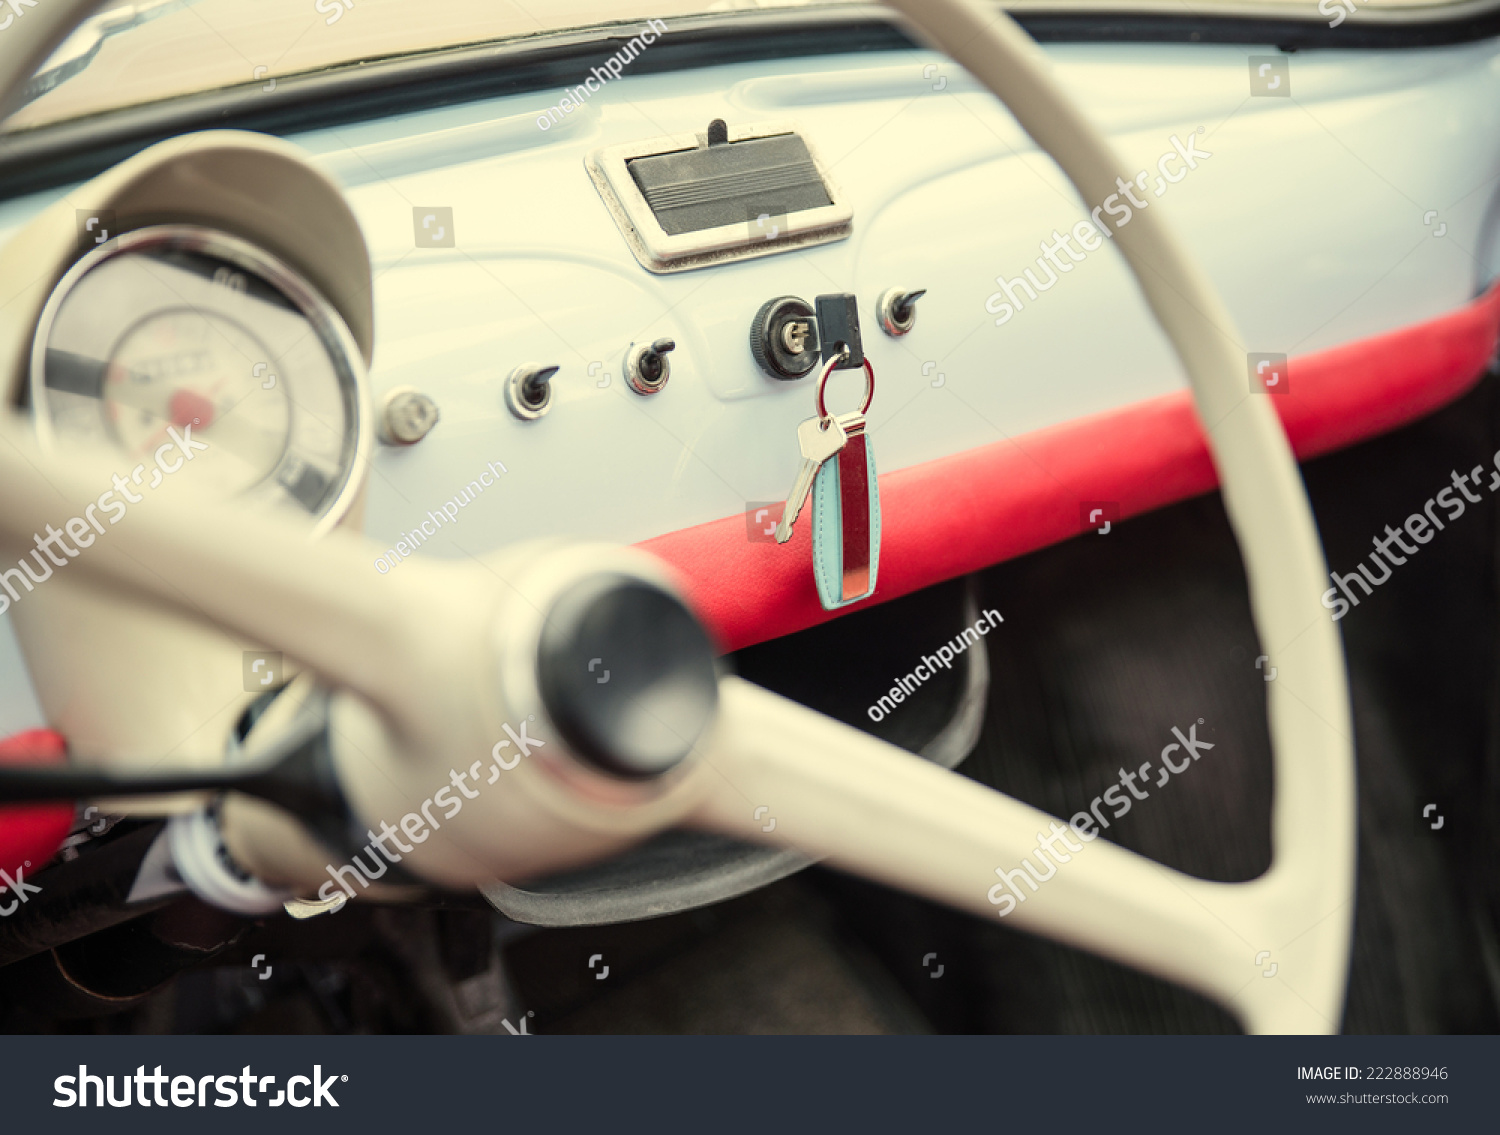 old vintage car interiors view stock photo 222888946 shutterstock. Black Bedroom Furniture Sets. Home Design Ideas